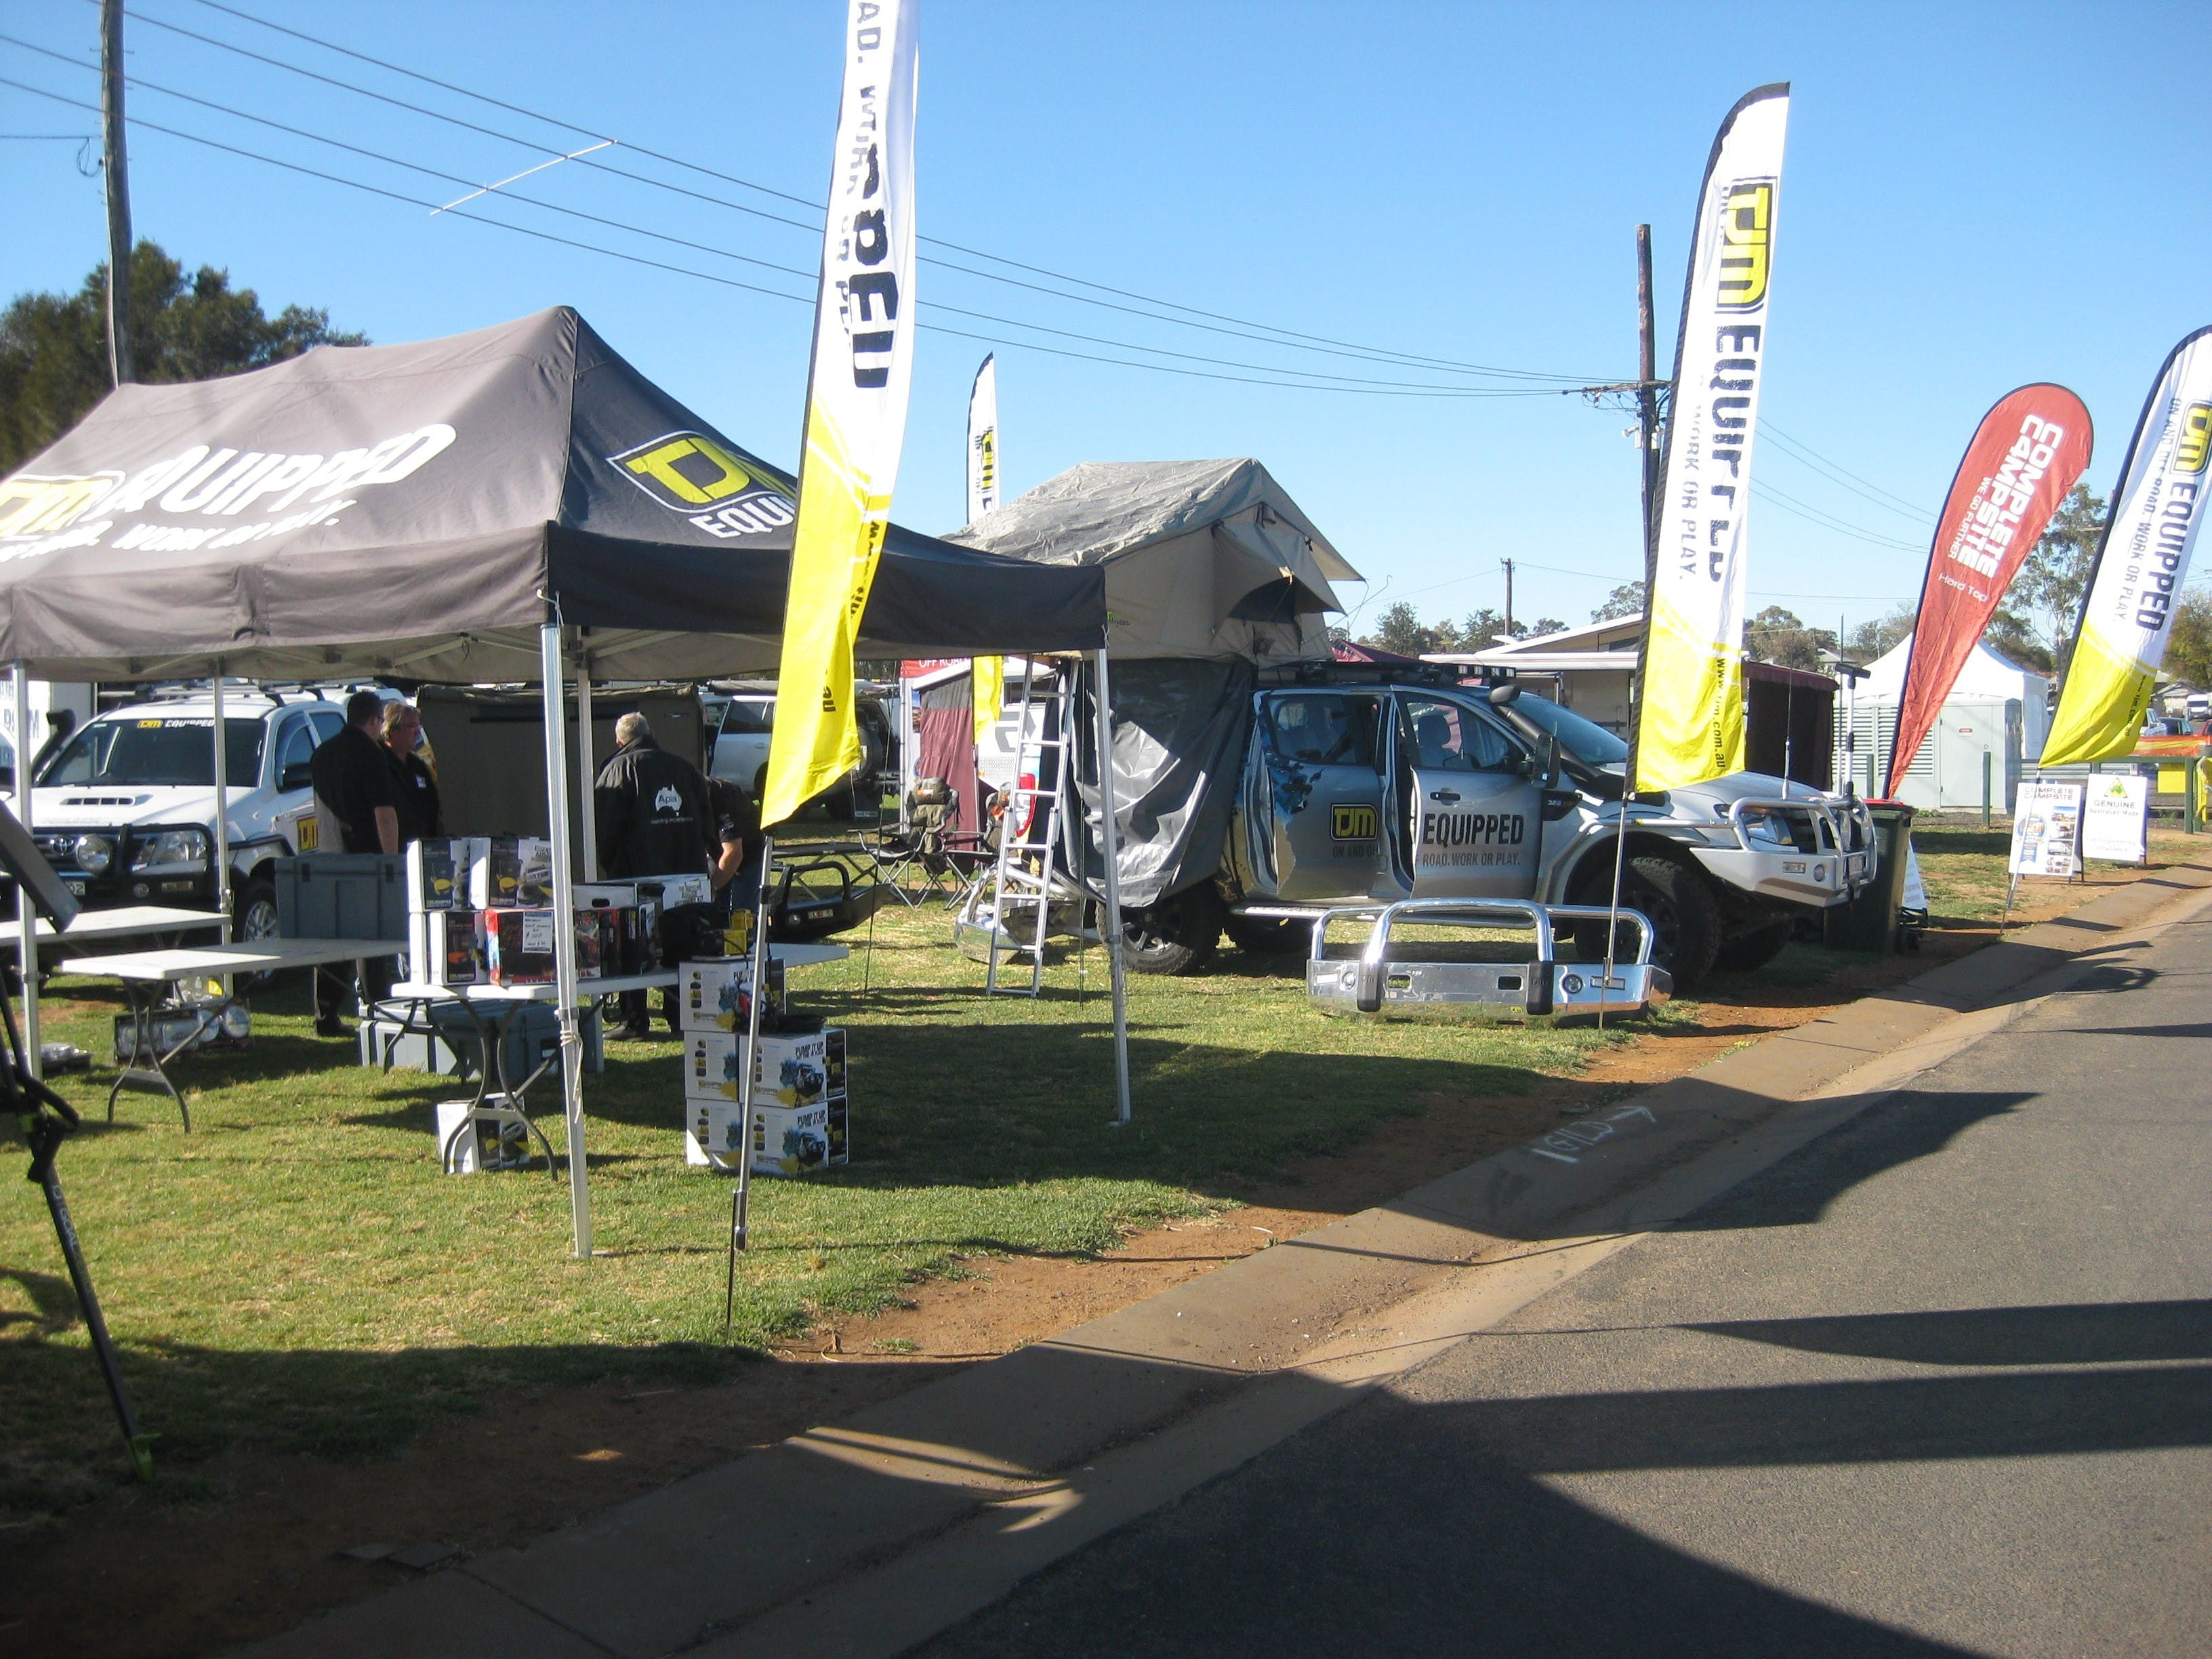 Orana Caravan Camping 4WD Fish and Boat Show - Bundaberg Accommodation